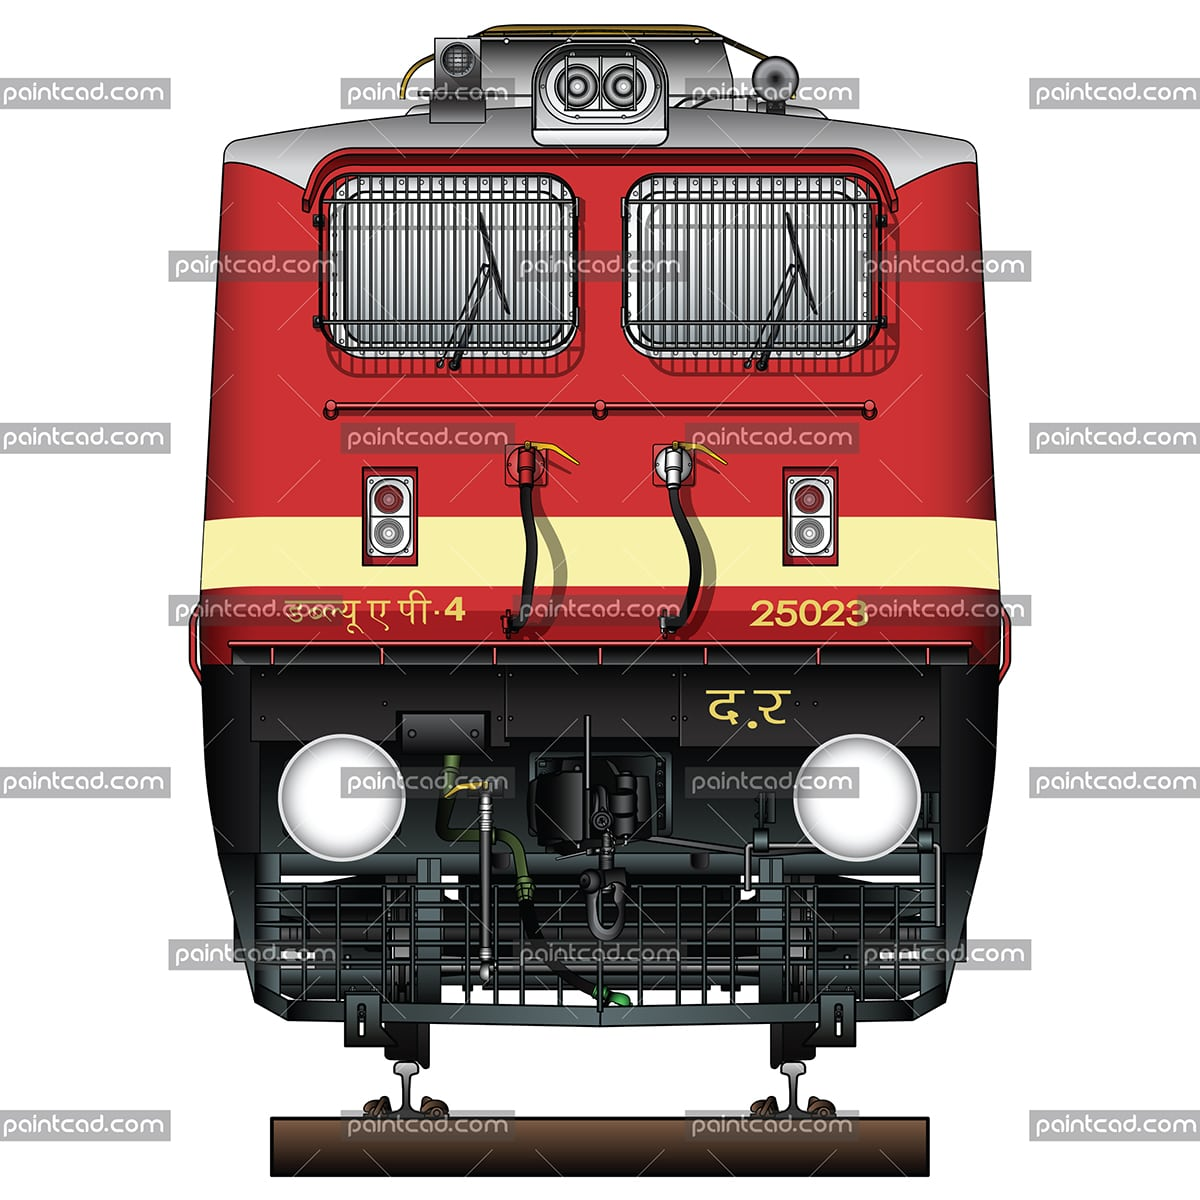 Passenger electric locomotive class WAP-4 by Indian Railways - vector illustration